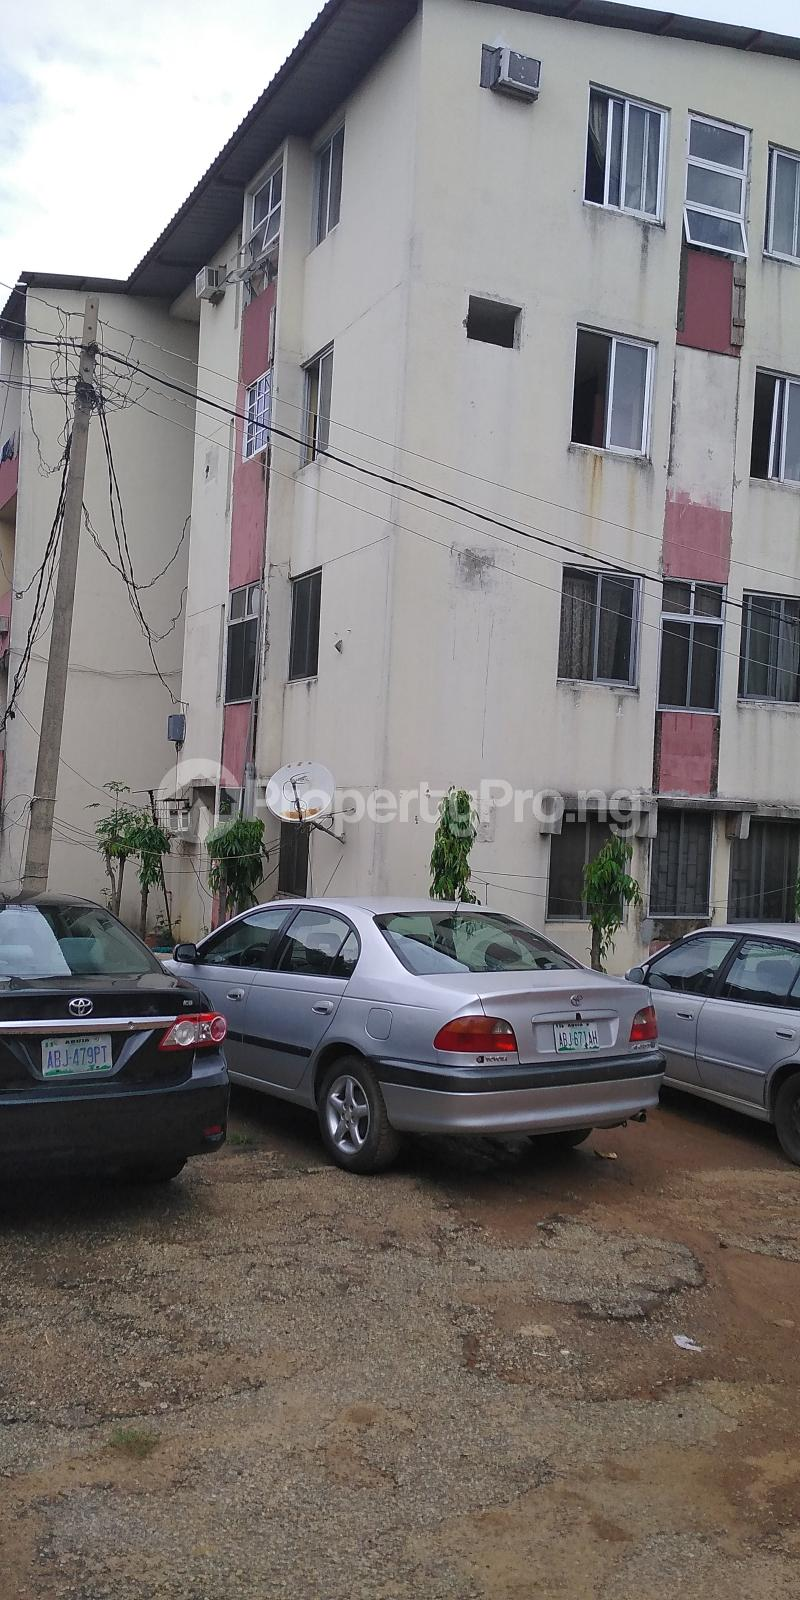 3 bedroom Flat / Apartment for sale Dodoma Street, Zone 6, Wuse 1 Abuja - 1